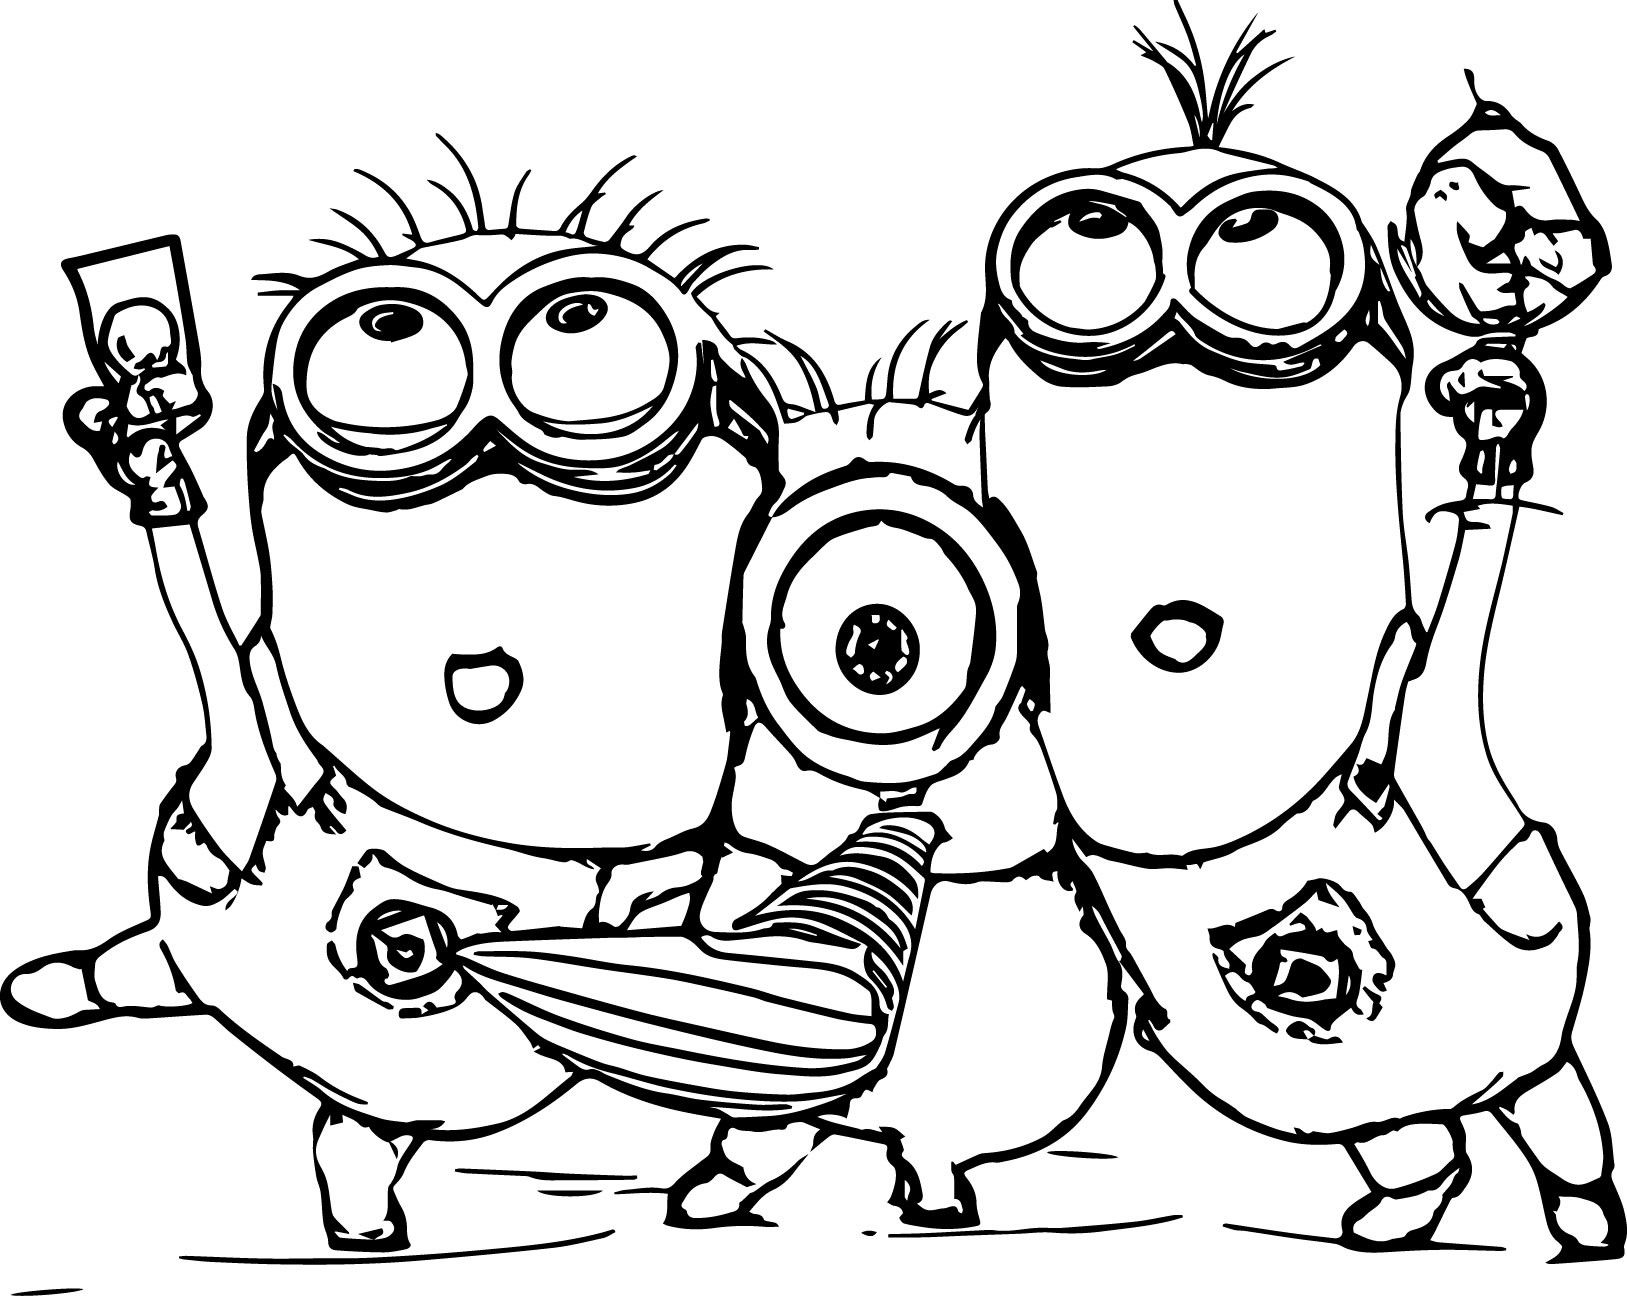 Printable Minions Coloring Pages  Minion Coloring Pages Best Coloring Pages For Kids